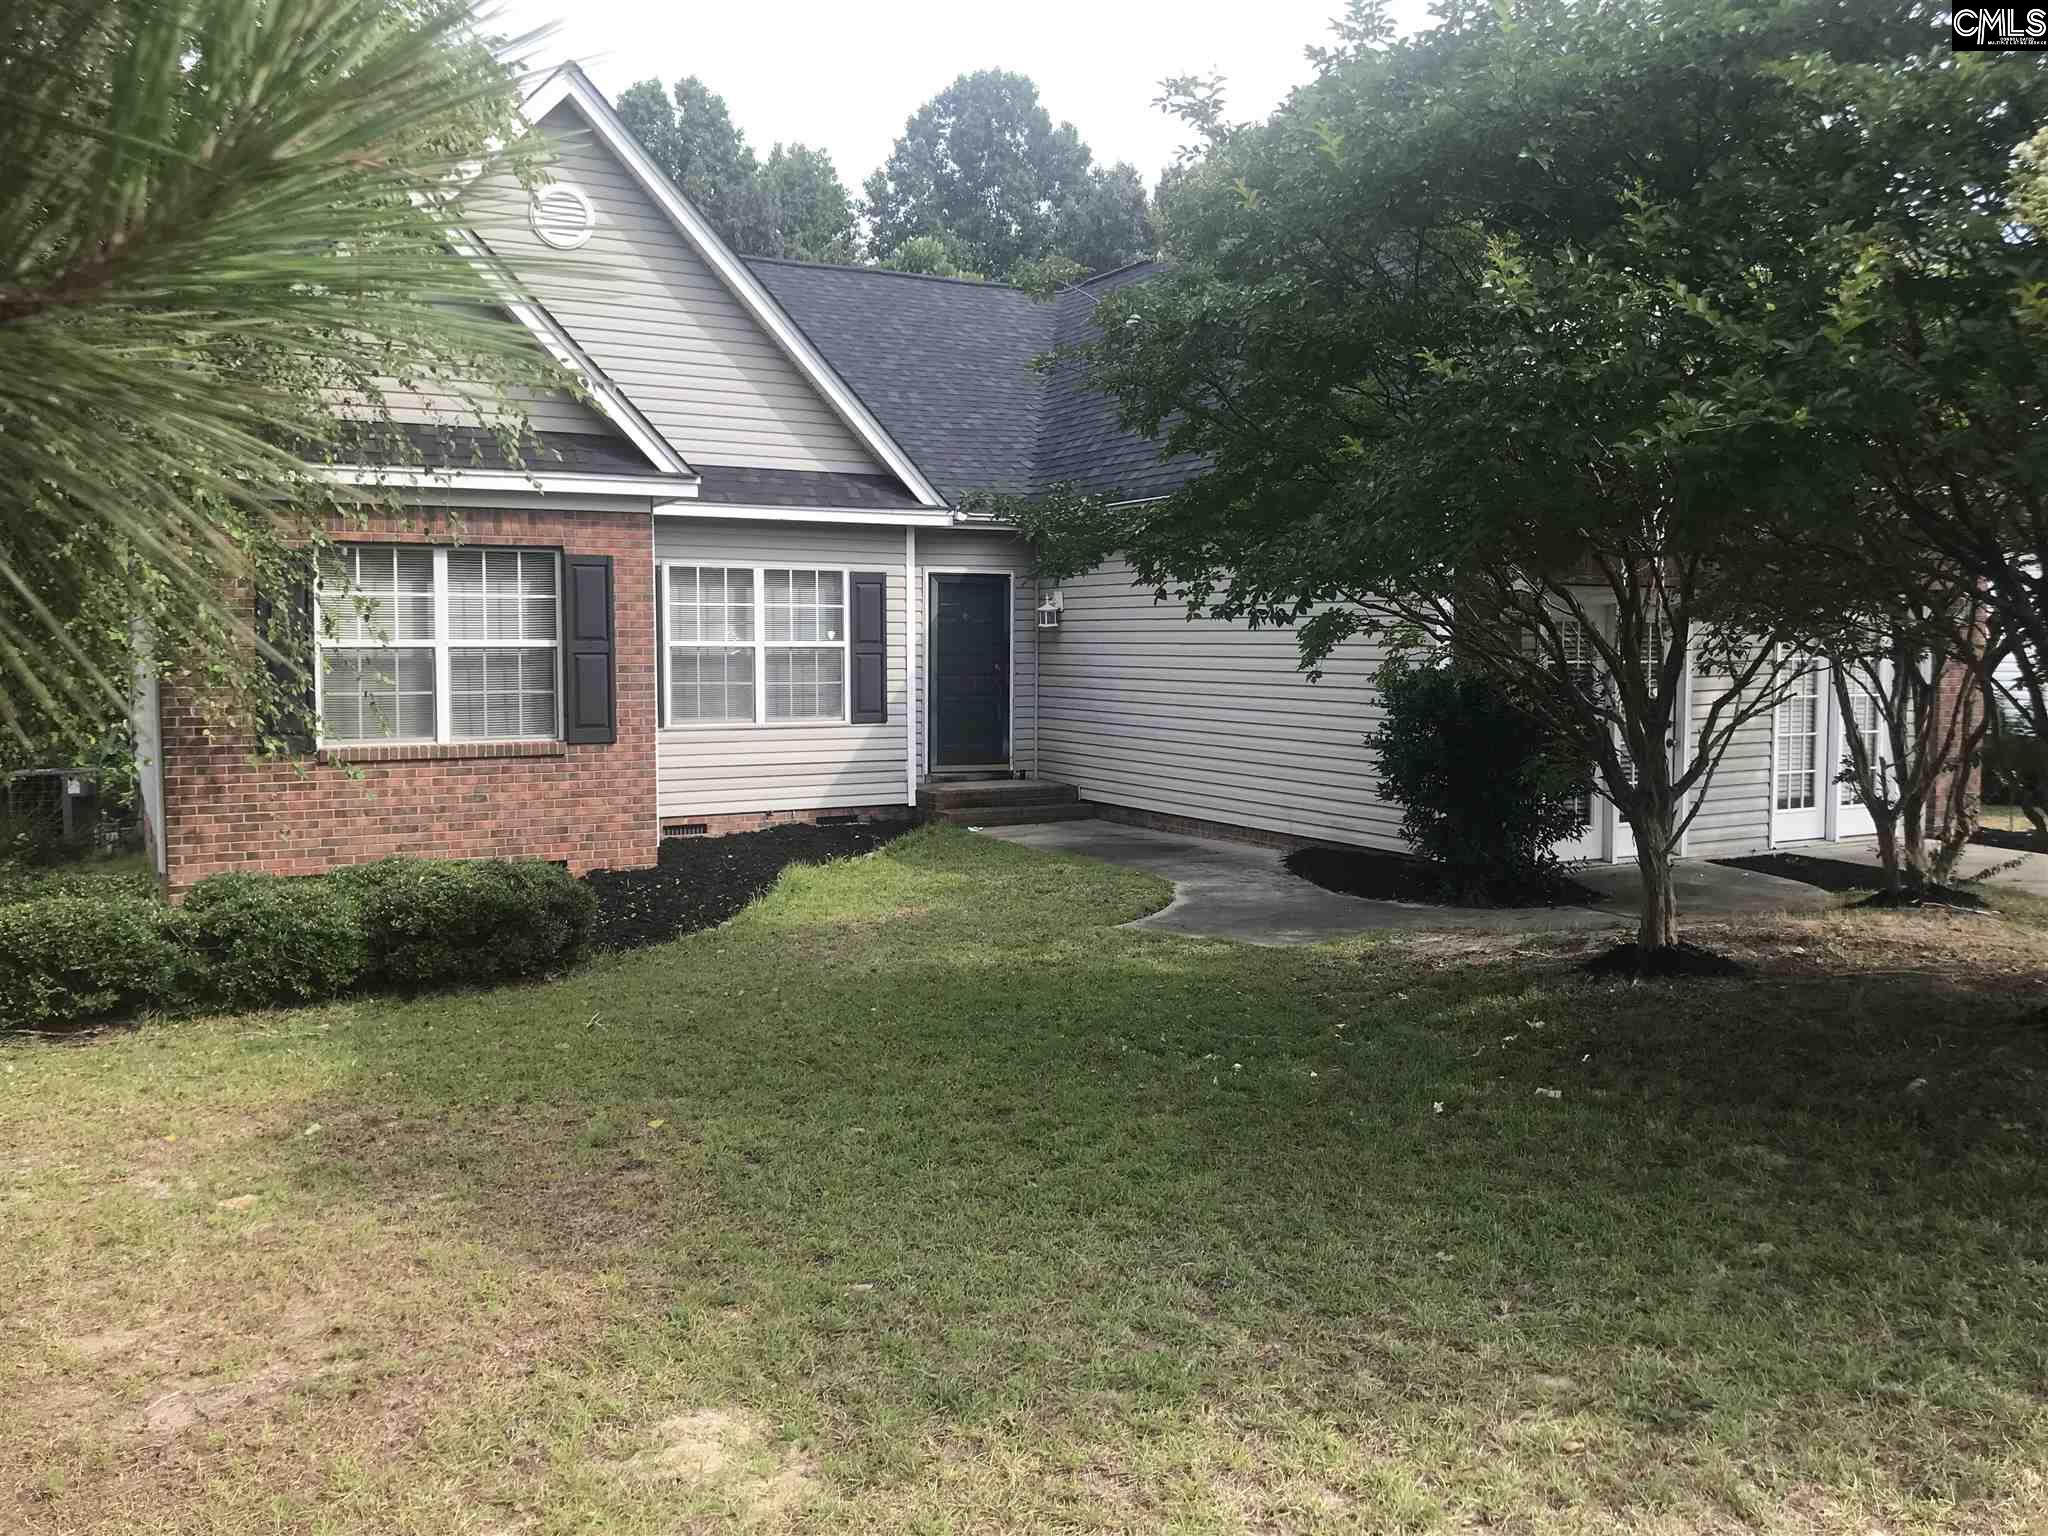 323 Carriage Oaks Columbia, SC 29229